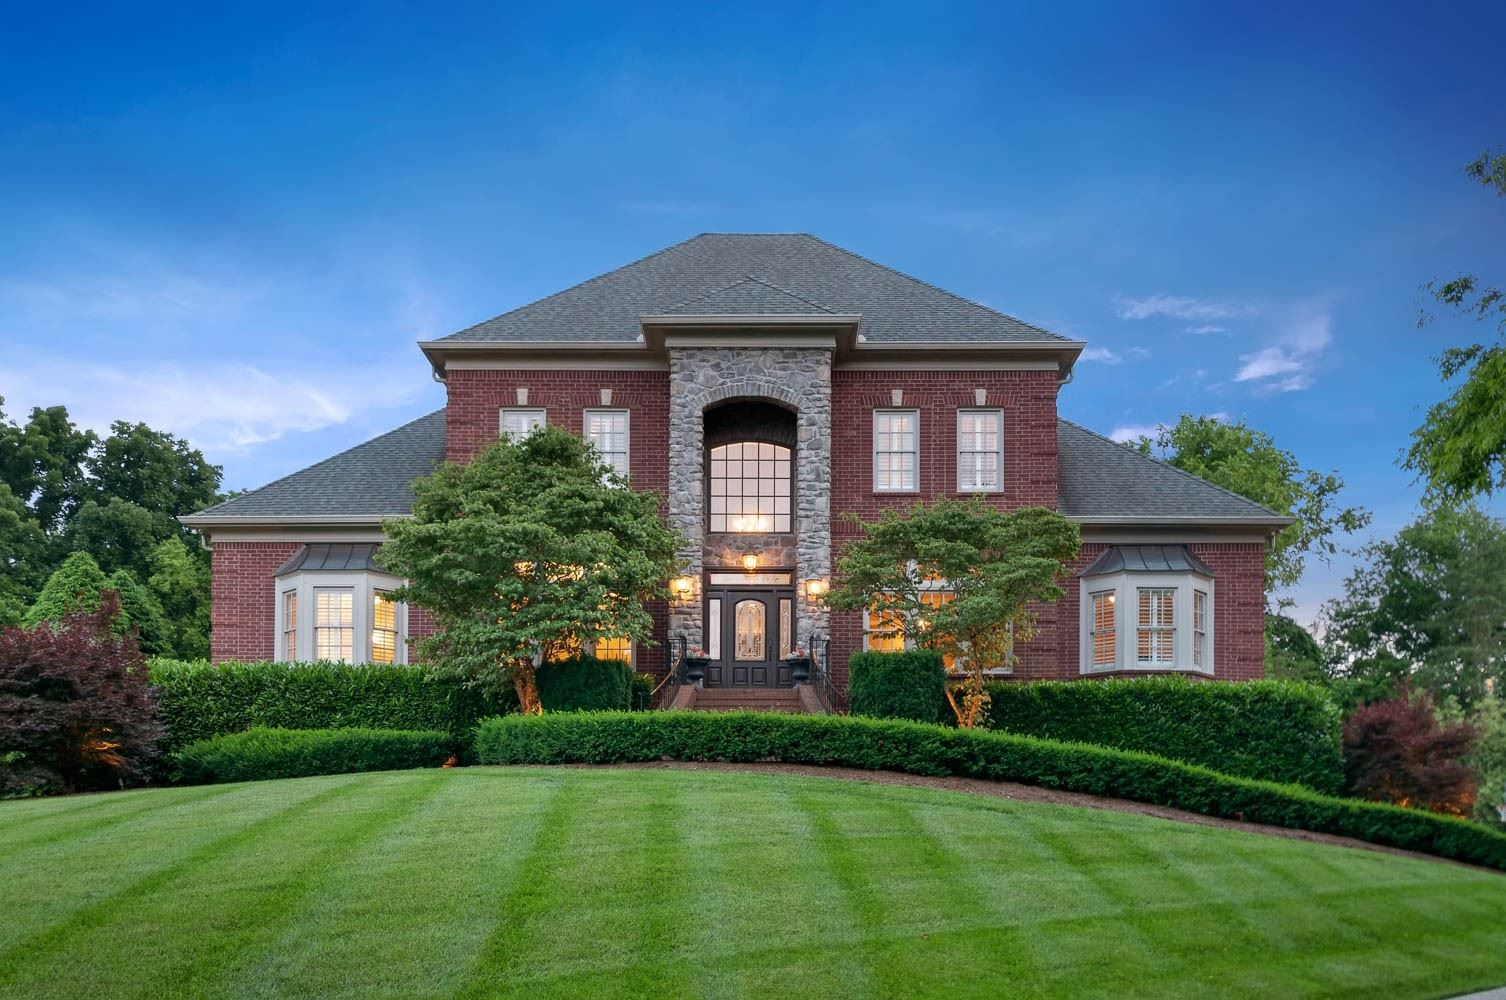 Photo of 5173 Remington Dr, Brentwood, TN 37027 (MLS # 2262958)